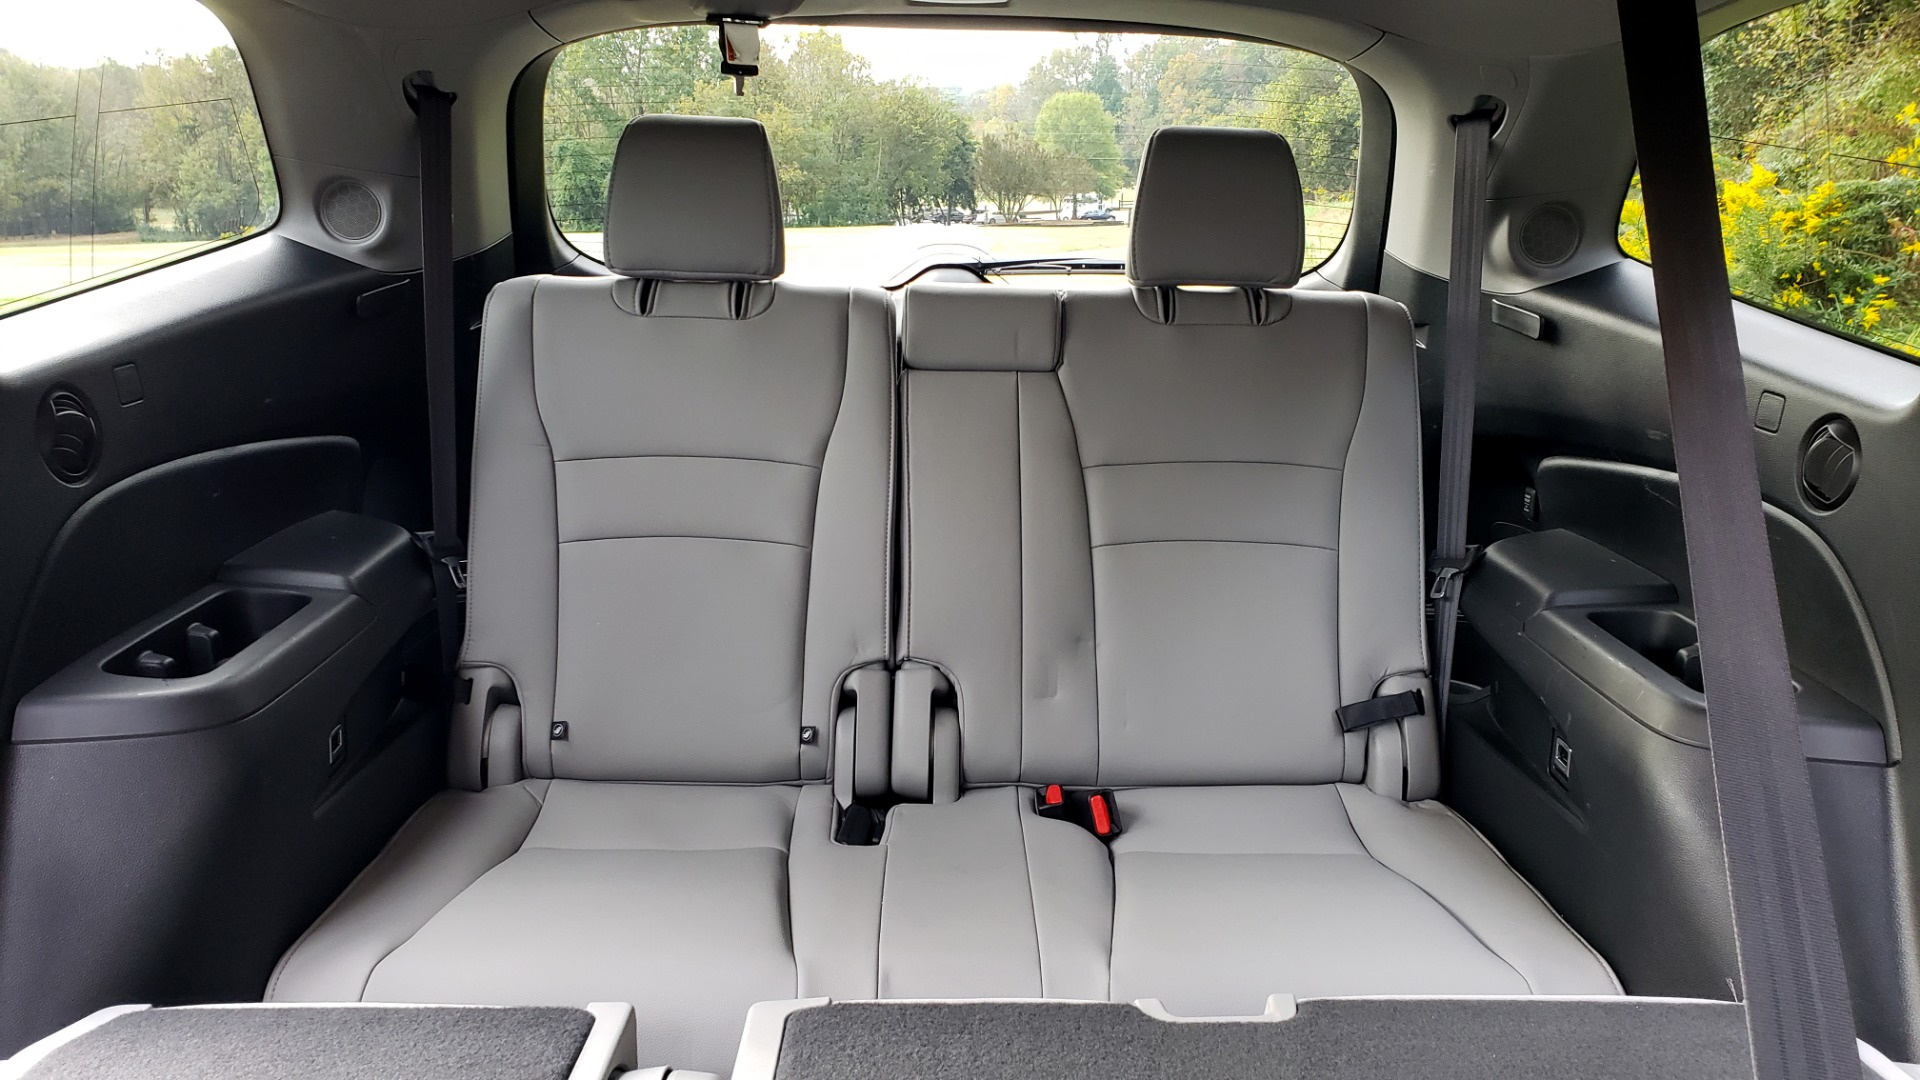 Used 2017 Honda PILOT TOURING 2WD / NAV / SUNROOF / 3-ROW / ENT SYS / REARVIEW for sale Sold at Formula Imports in Charlotte NC 28227 28